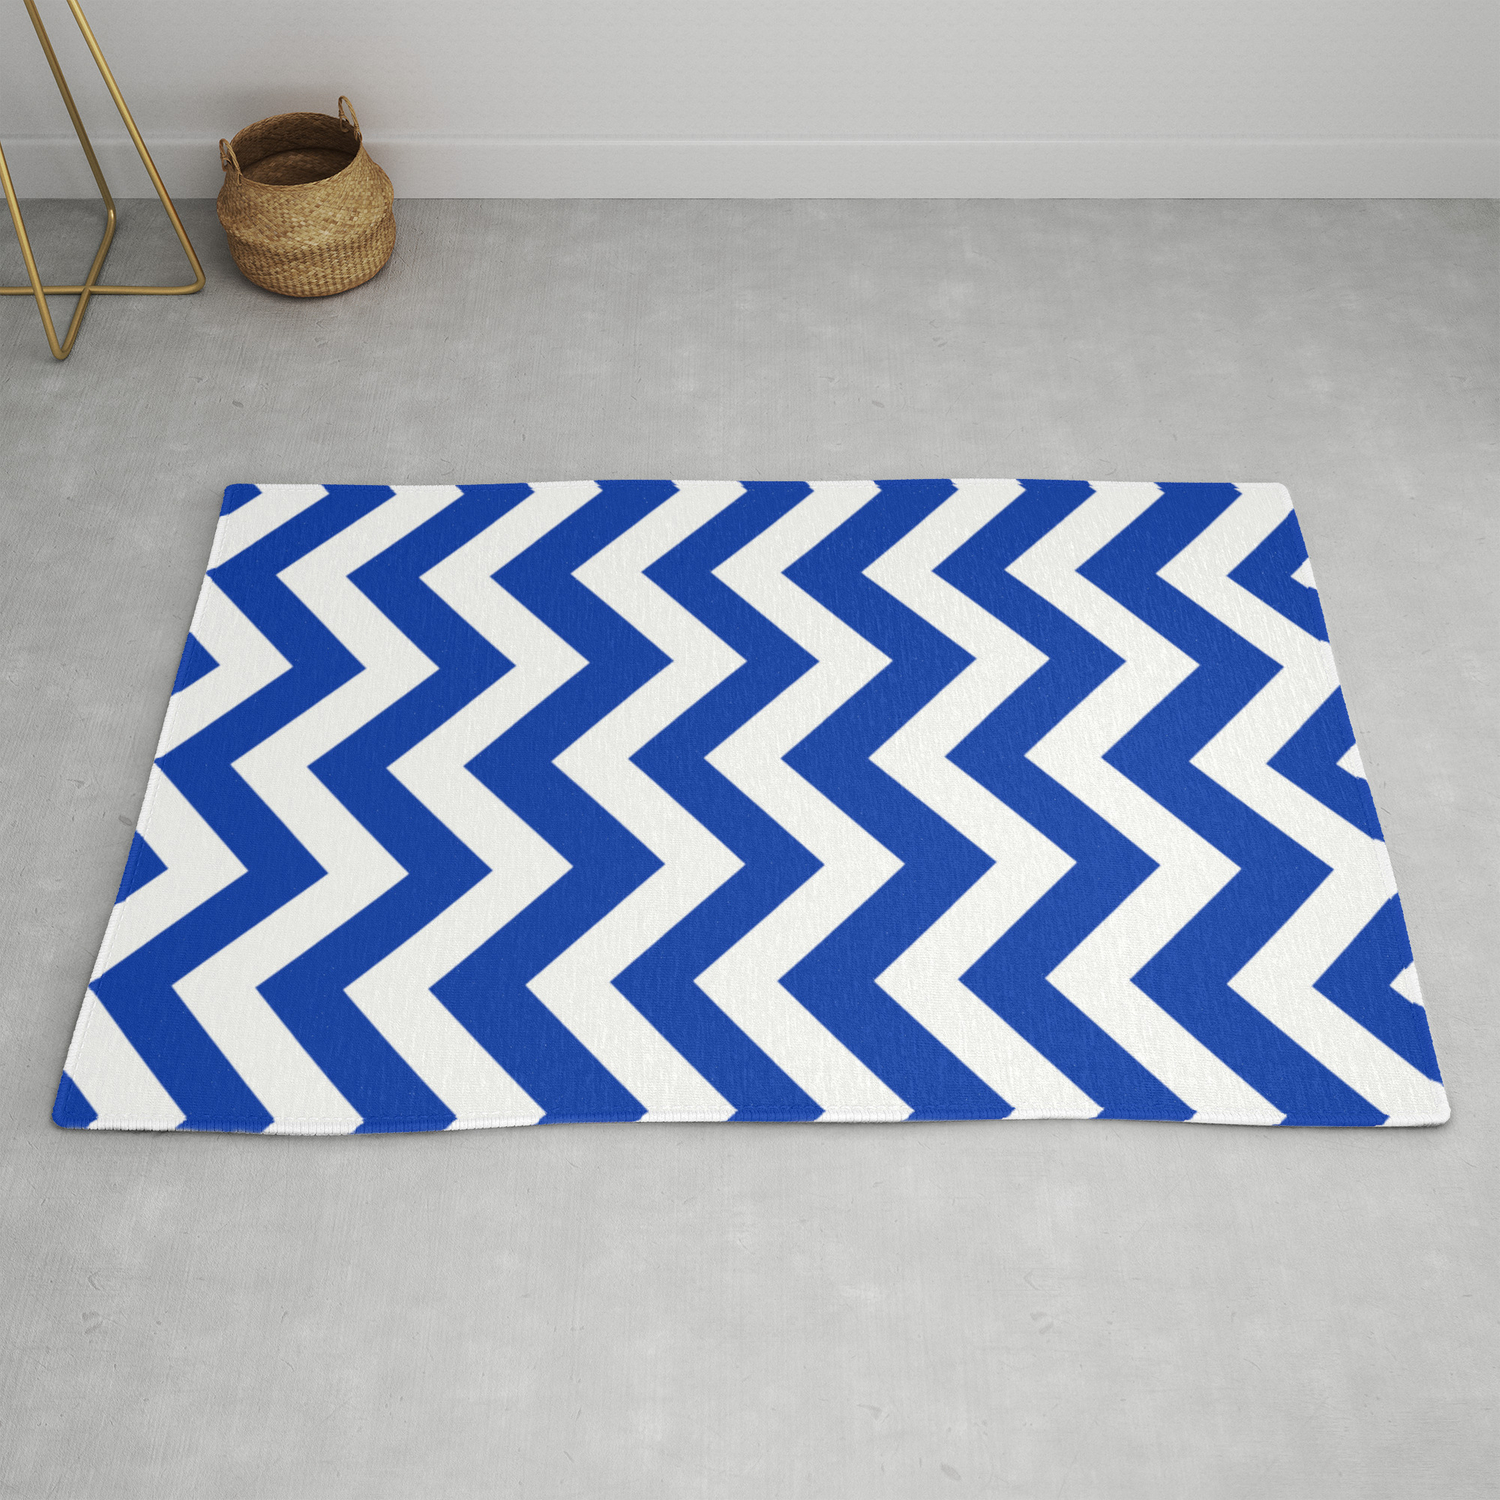 UA blue - blue color - Zigzag Chevron